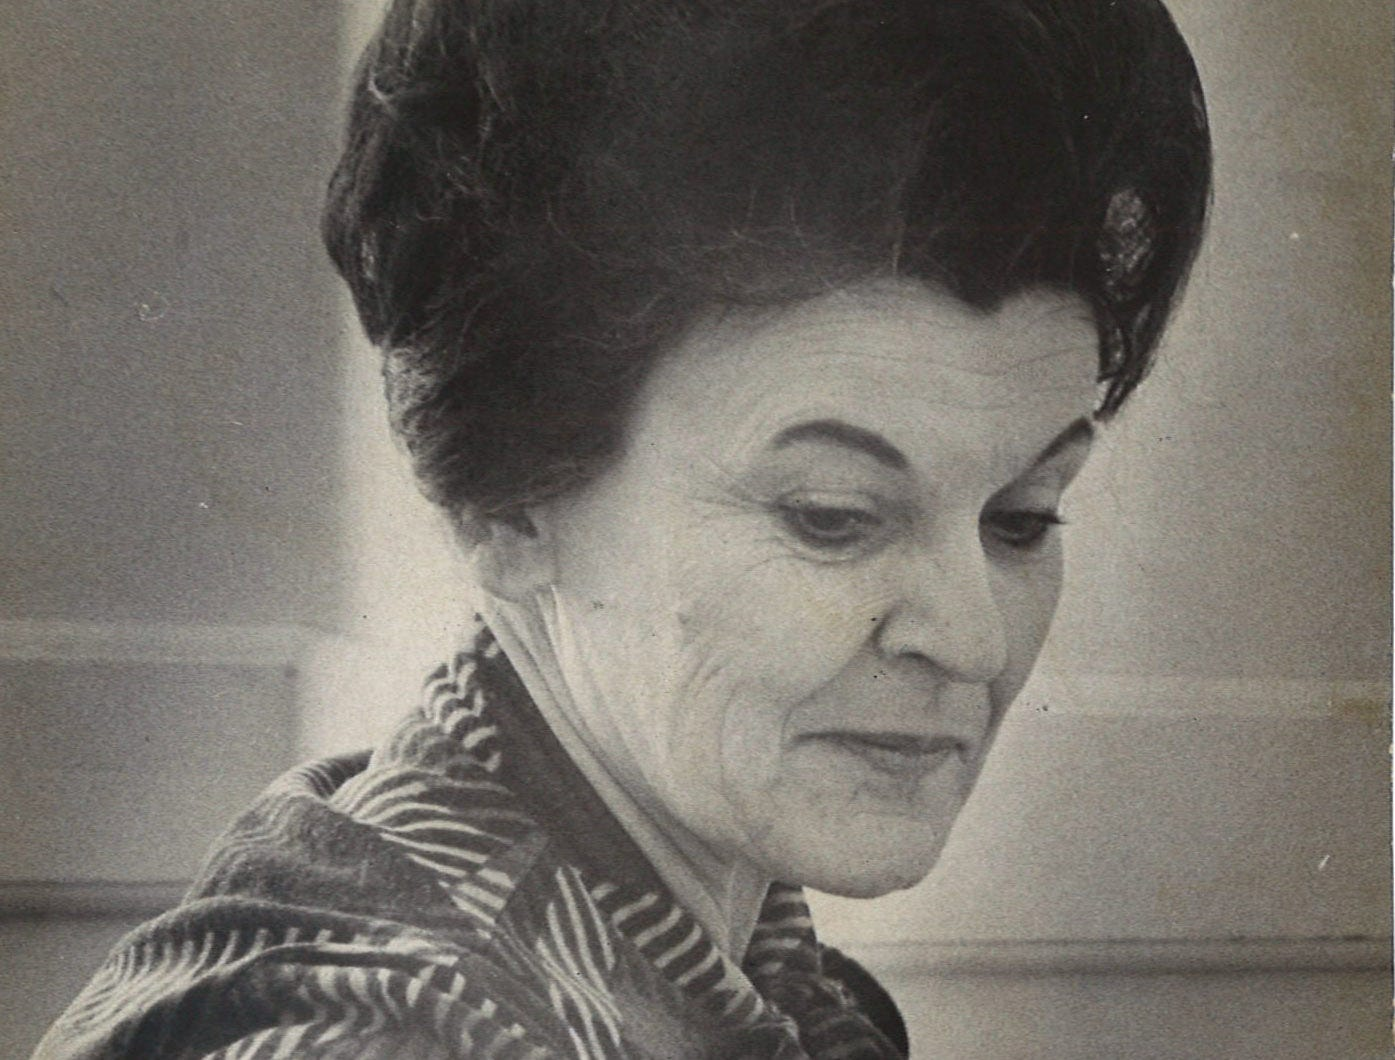 Rachel Littlejohn was elected to the 156th District Court, which serves Aransas, Bee, Live Oak, McMullen and San Patricio, in November 1974. This photo was taken in January 1976.